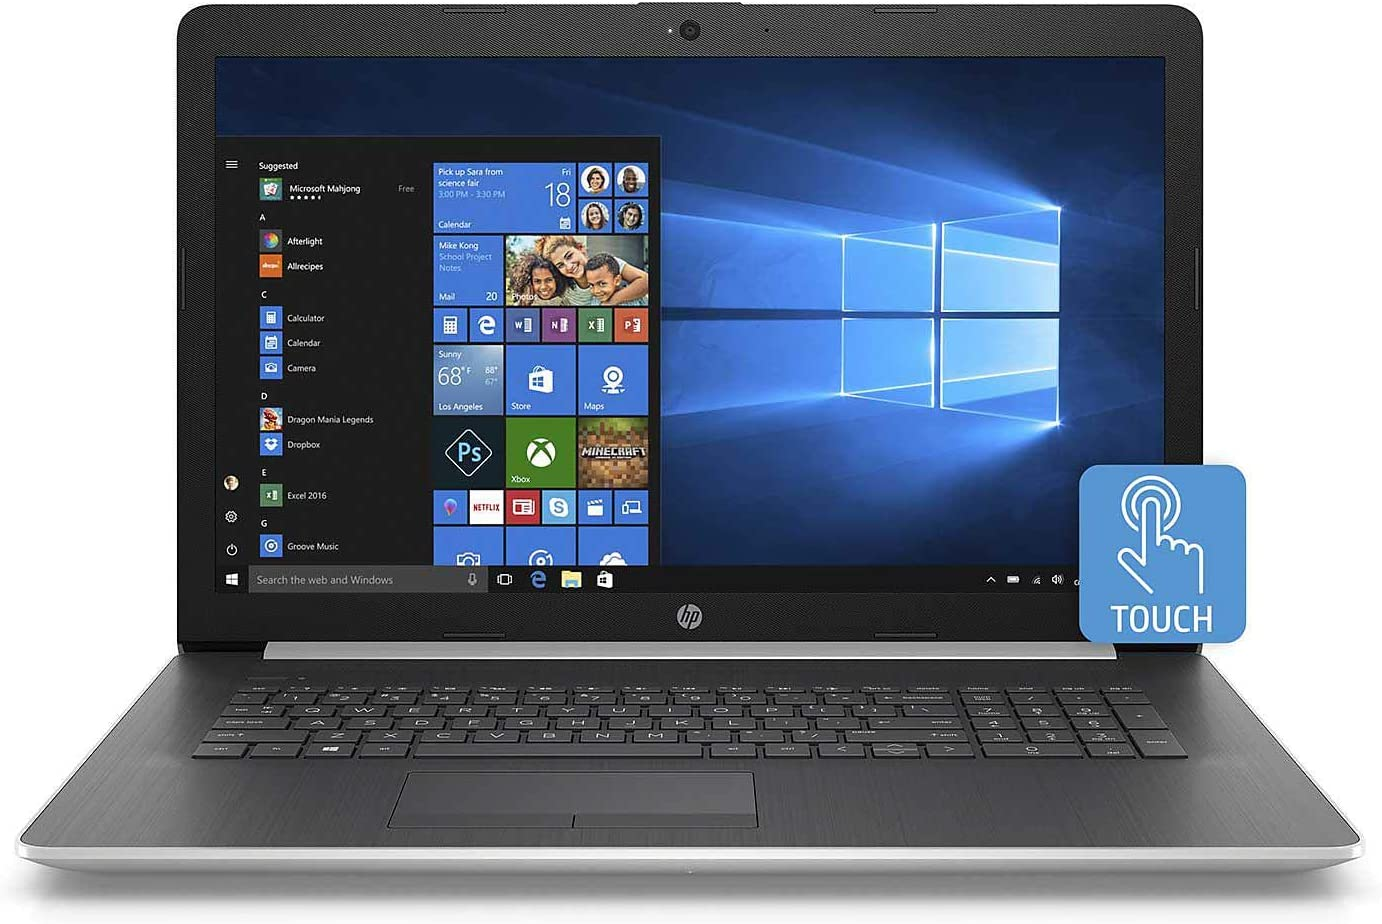 "2019 HP Laptop Computer 17.3"" HD+ Touchscreen 8th Gen Intel Quad-Core i7-8565U up to 4.6GHz 16GB DDR4 RAM 1TB SSD + 1TB HDD DVDRW Intel UHD Graphics 620 WiFi Bluetooth 4.2 HDMI Windows 10"